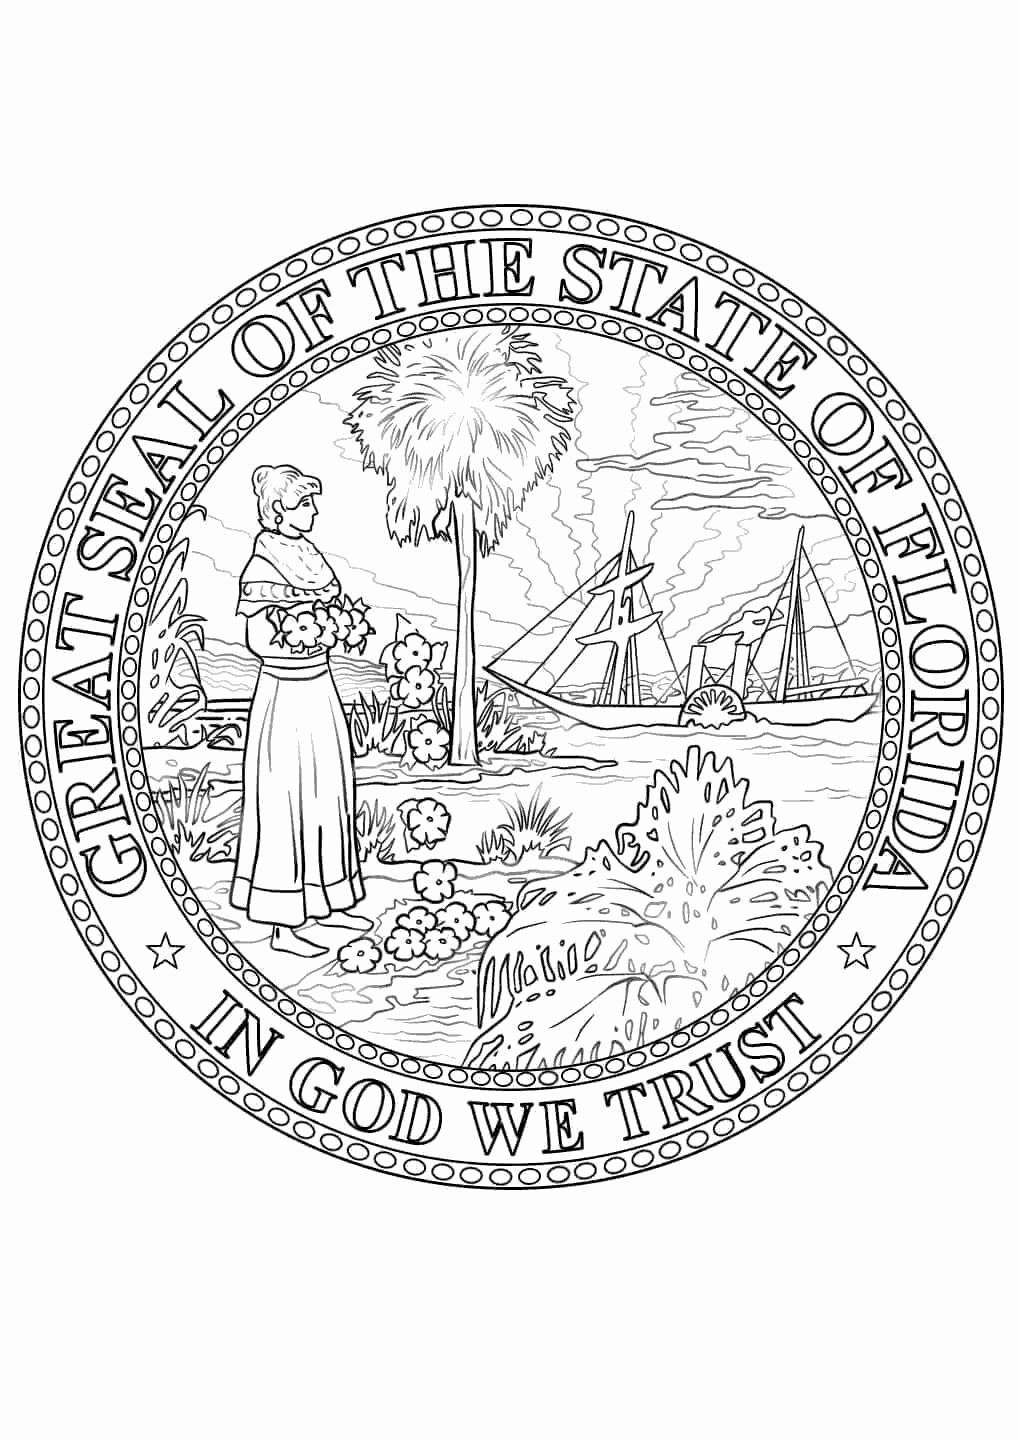 Virginia State Flag Coloring Page Awesome Coloring Pages 47 Florida Coloring Page Image Ideas Ponce Flag Coloring Pages Florida Flag Coloring Pages